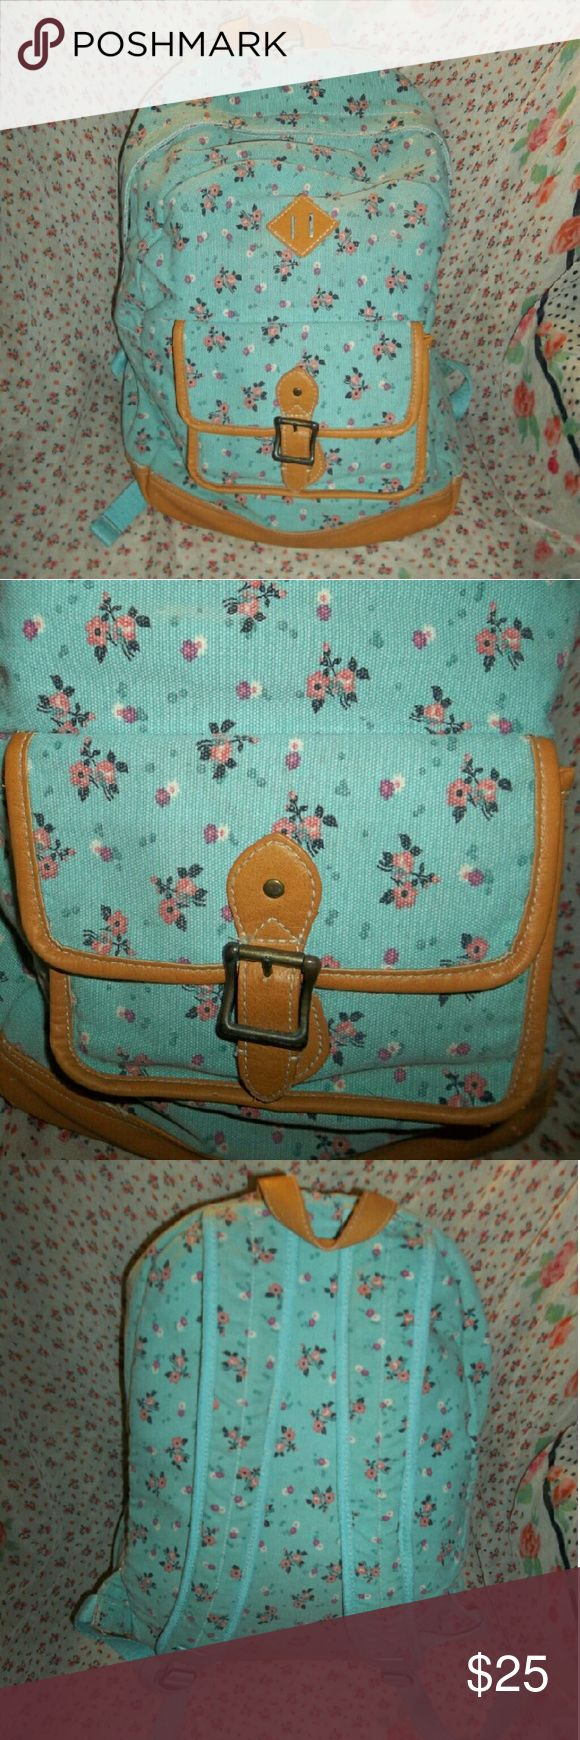 🆕 Floral Blue Backpack 🆕 Floral Blue Backpack  Pattern:  floral Colors:  robin egg blue with tan lining Tan lining is faux leather Medium-sized compartment on the front 4 more compartments on the inside, varying in sizes Good sized backpack, can fit a lot in it New, but without the tags  **MAKE ME AN OFFER IF INTERESTED** Pb teen Bags Backpacks